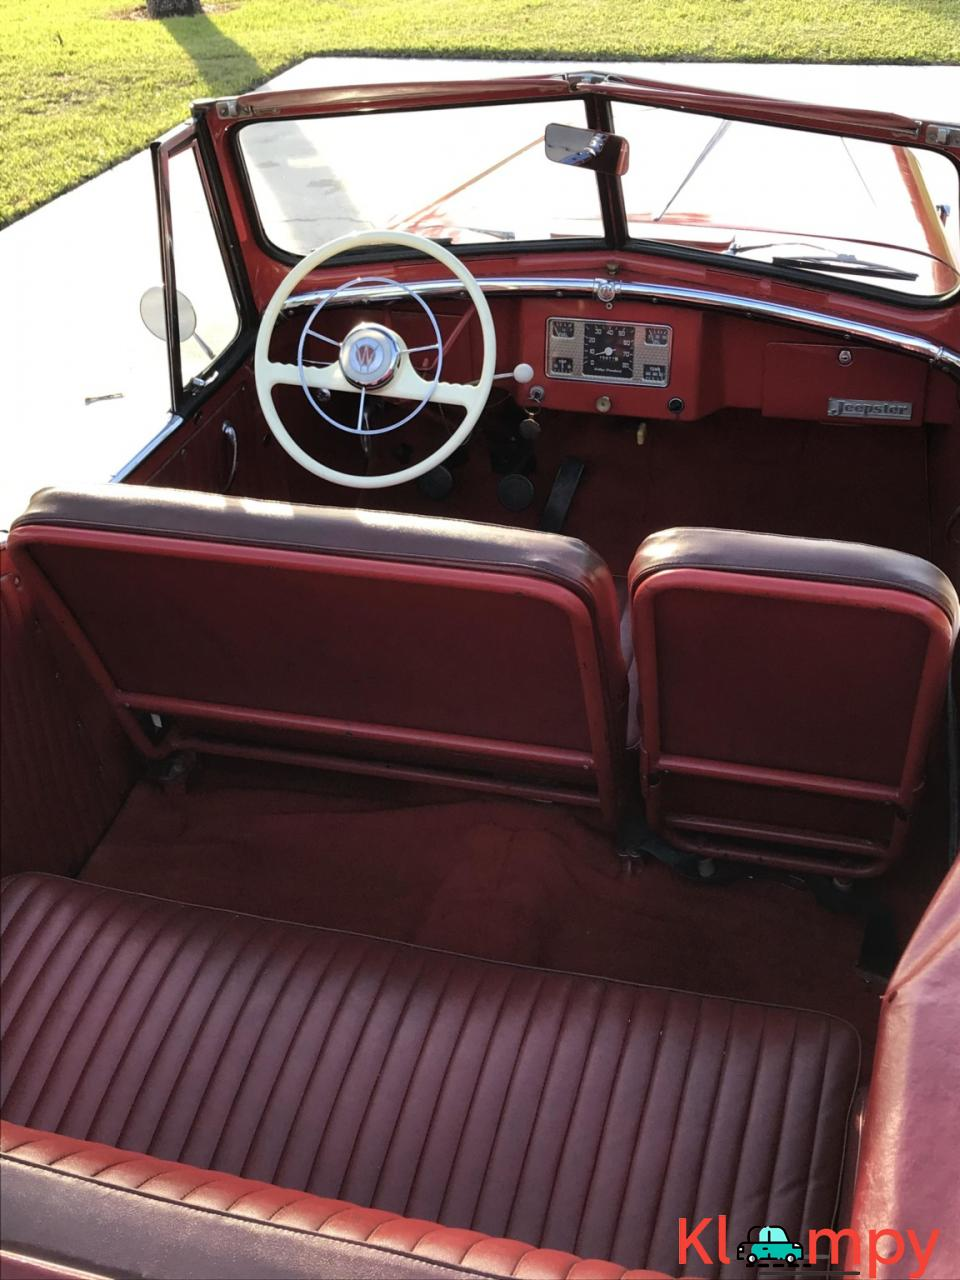 1949 Willys-Overland Jeepster 148ci L48 - 15/16